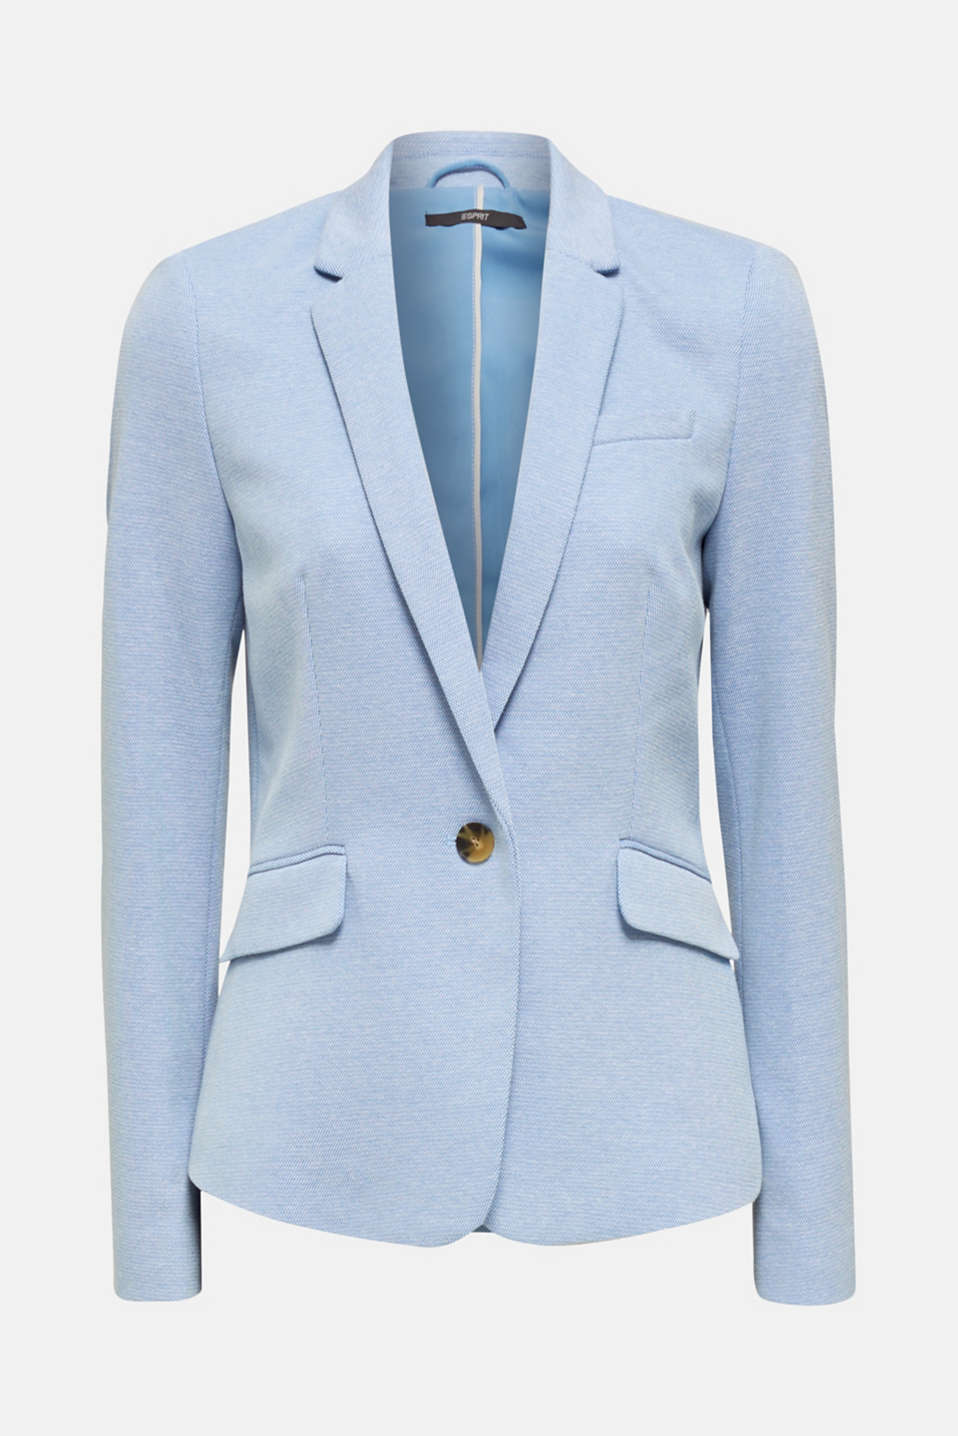 Fitted textured blazer, recycled, LIGHT BLUE, detail image number 7